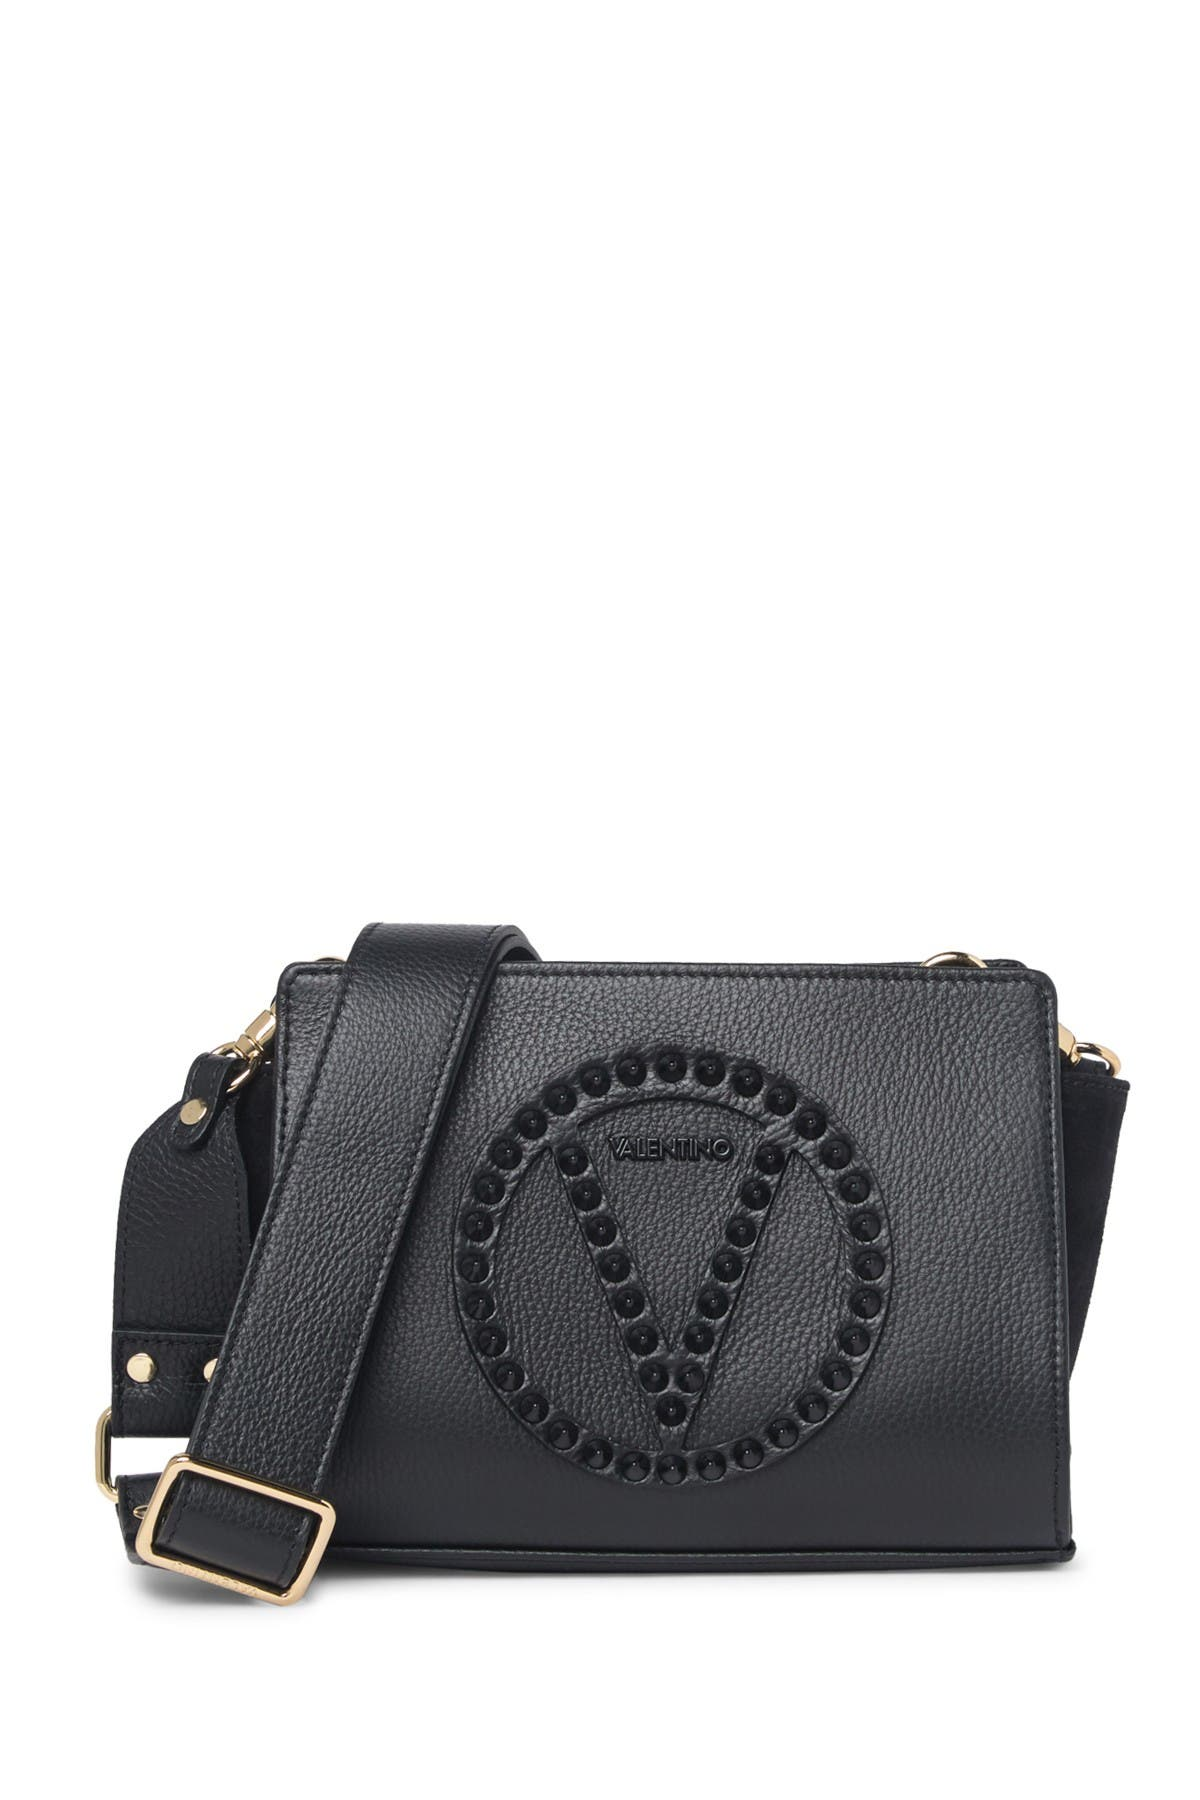 Image of Valentino By Mario Valentino Kikki Rock Studded Leather Crossbody Bag